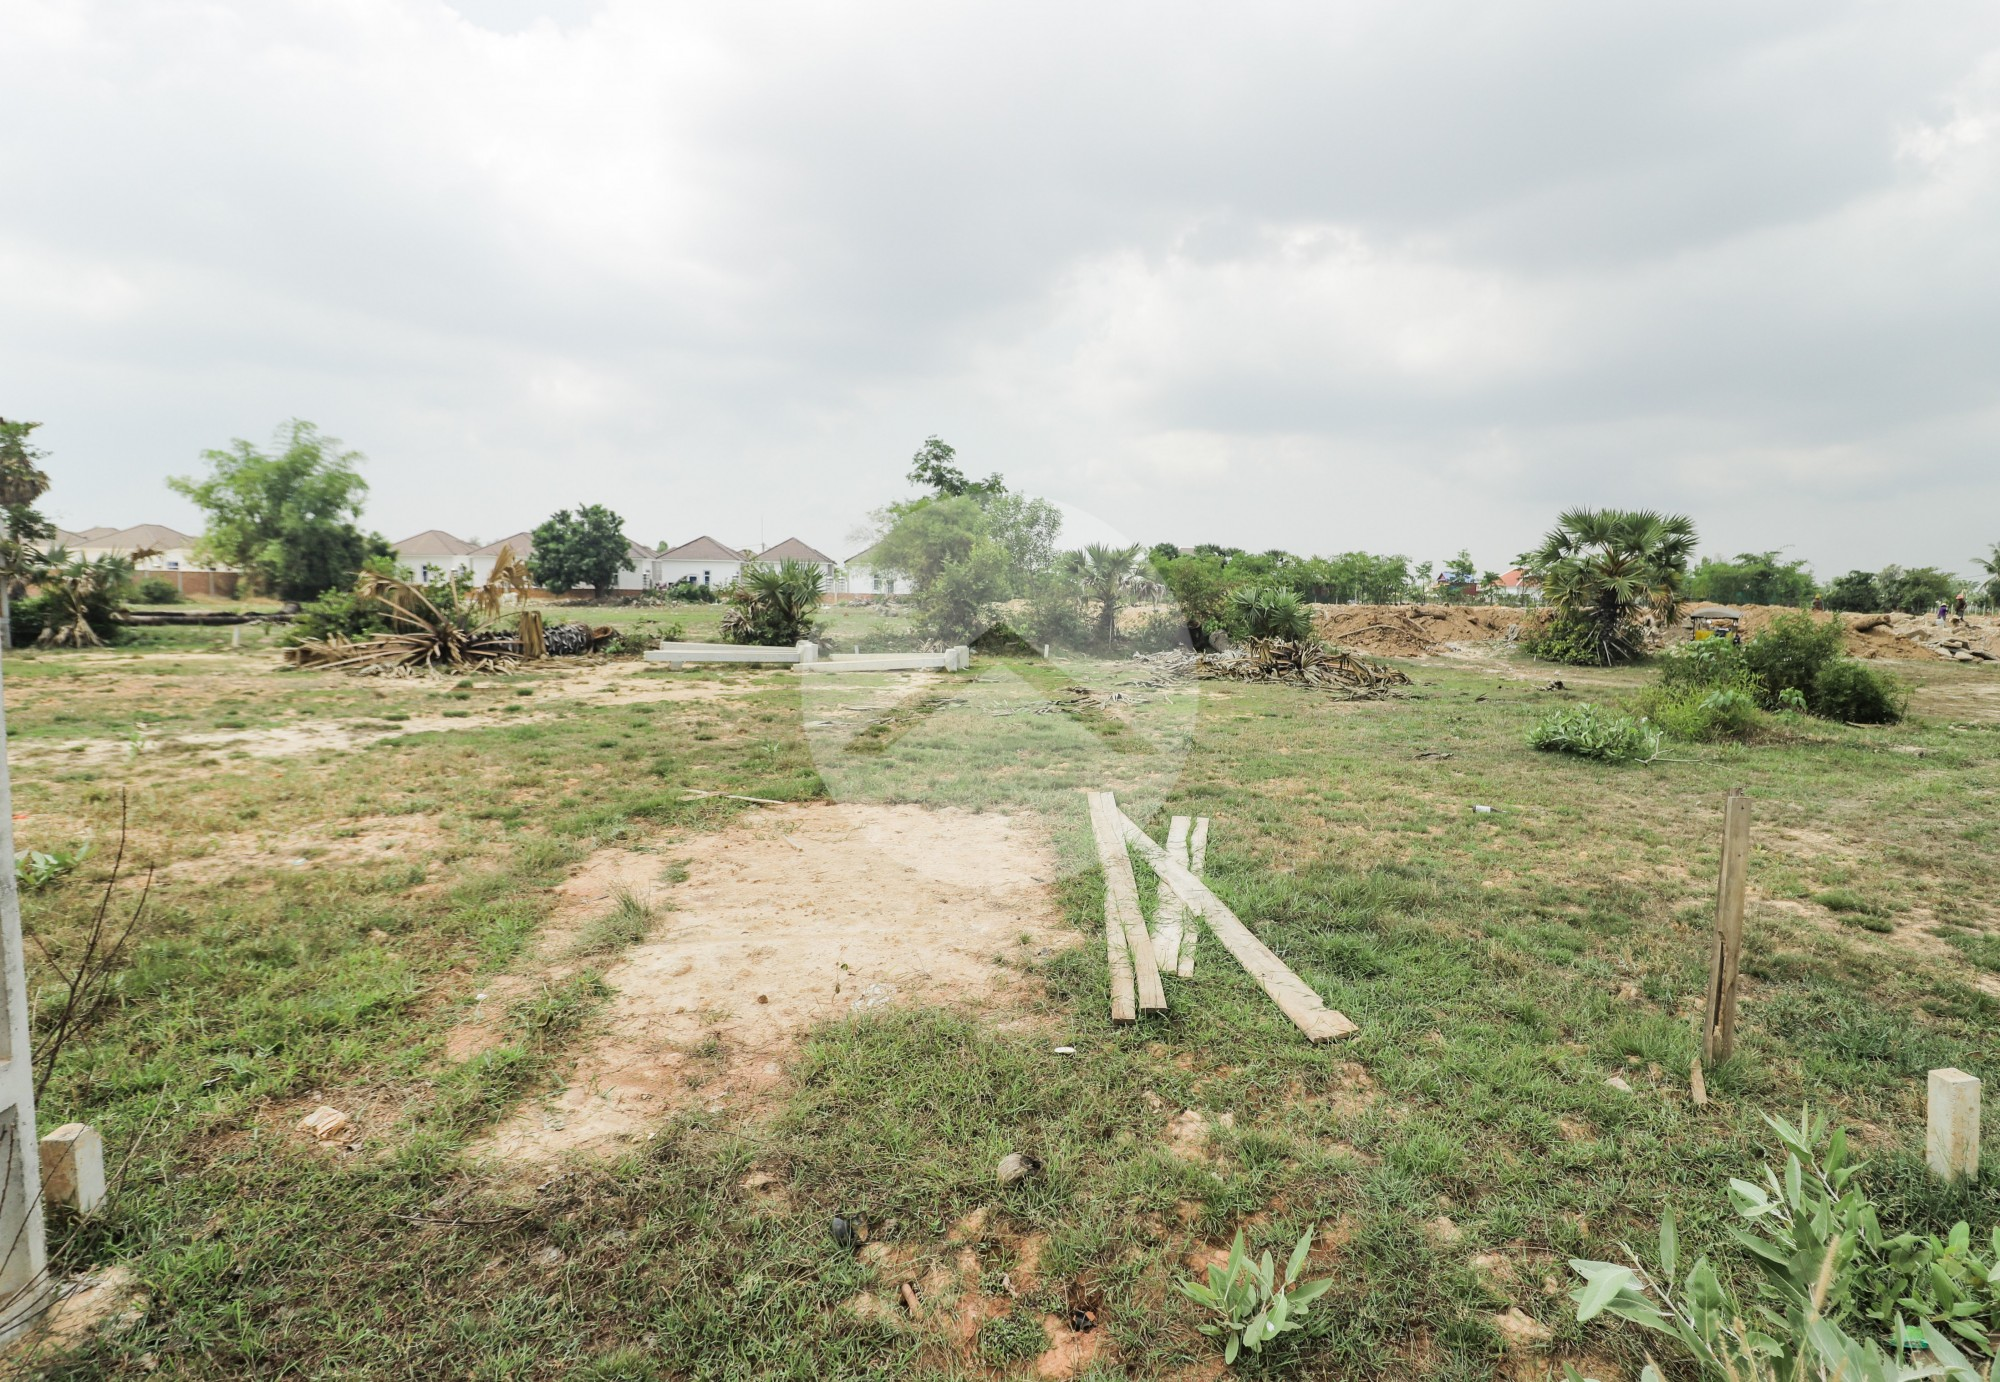 118 Sqm Residential Land For Sale - Bakong District, Siem Reap